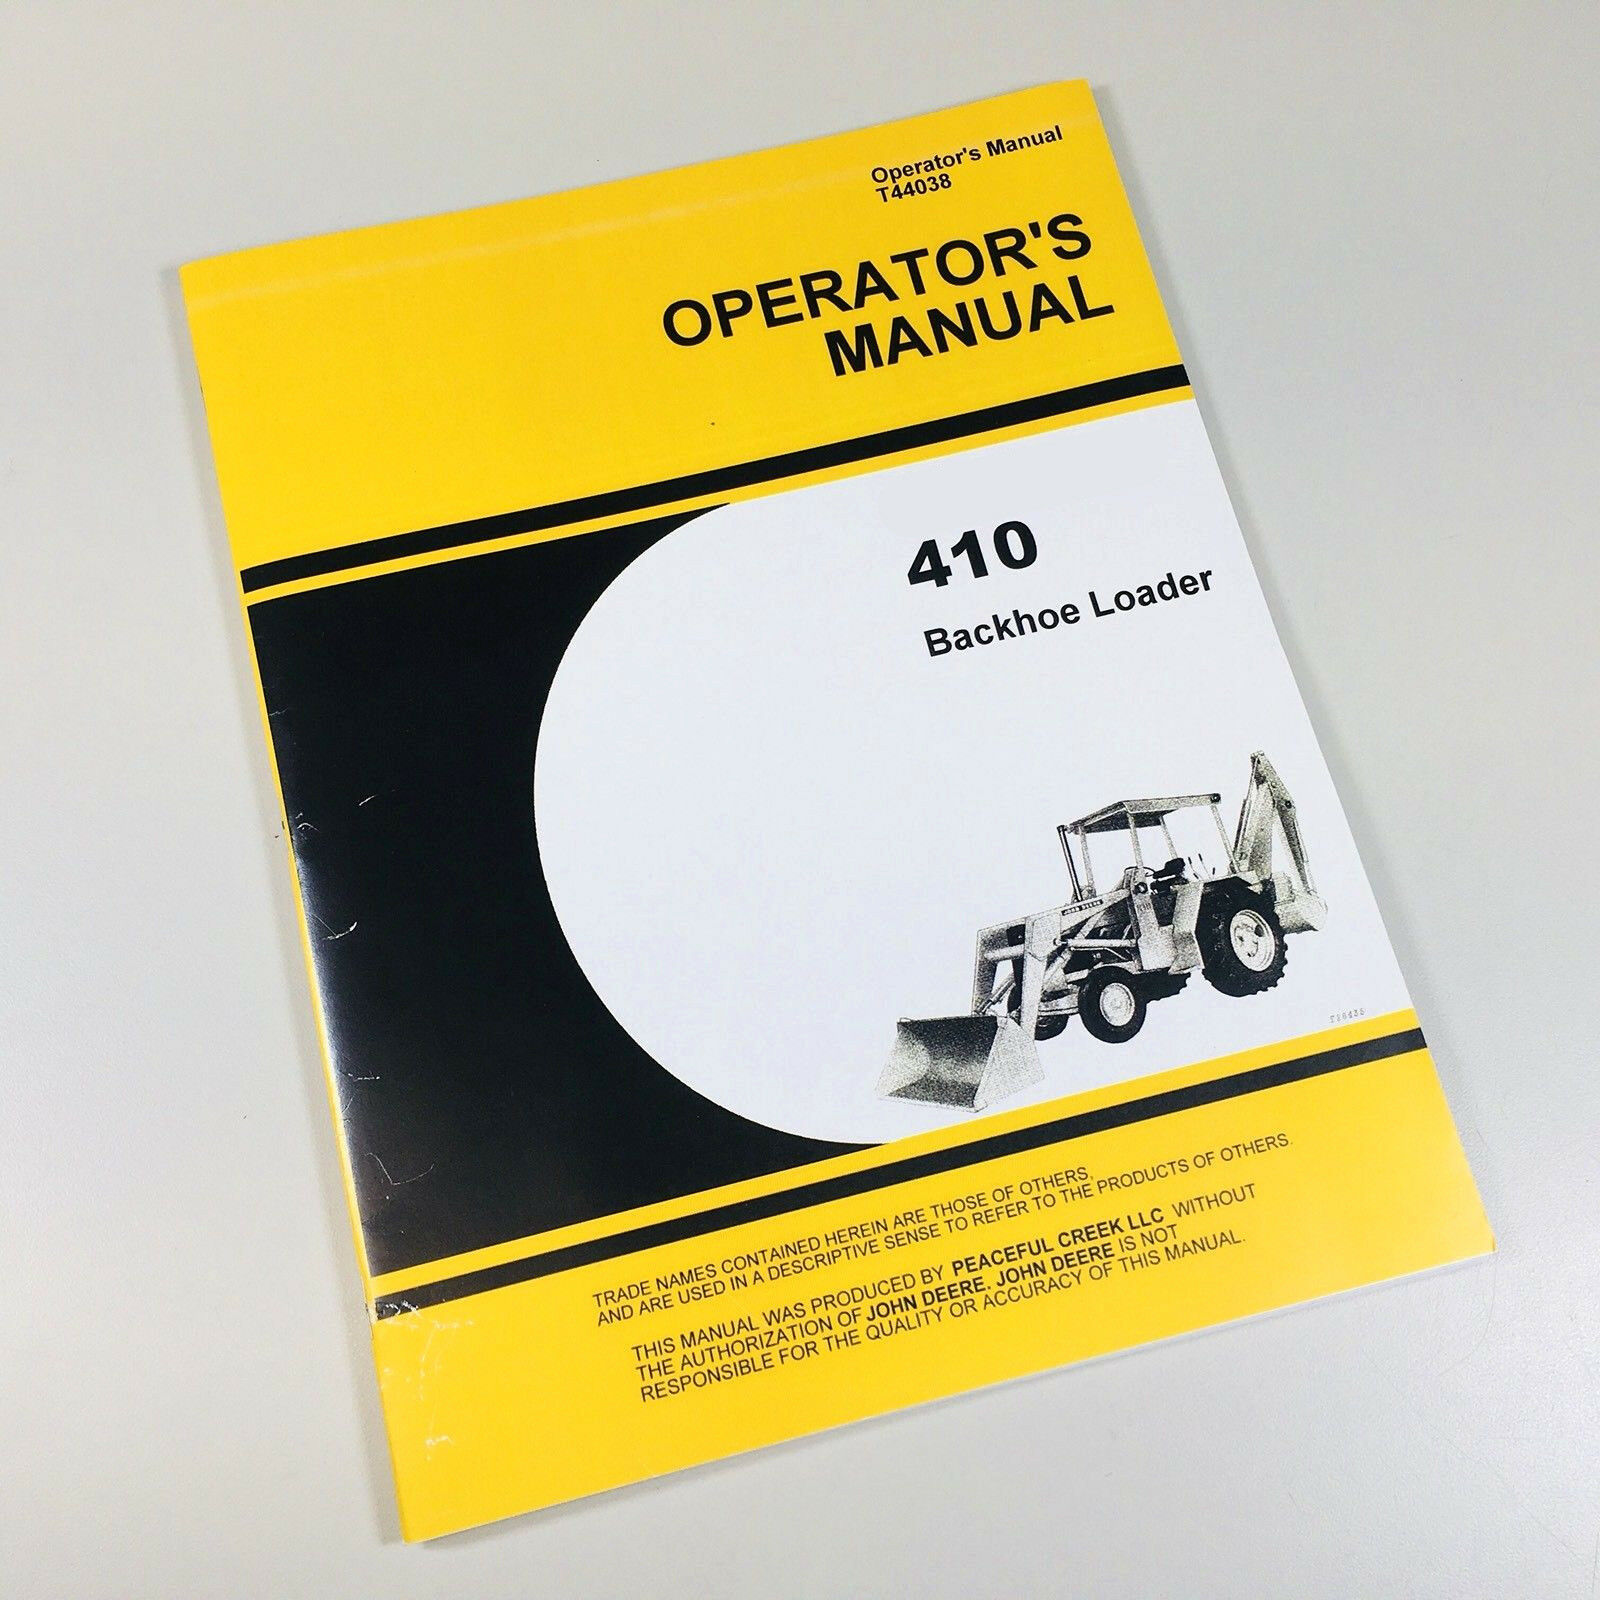 Operators Manual For John Deere Jd410 Backhoe Loader Owners 410 Tractor 1  of 10FREE Shipping ...